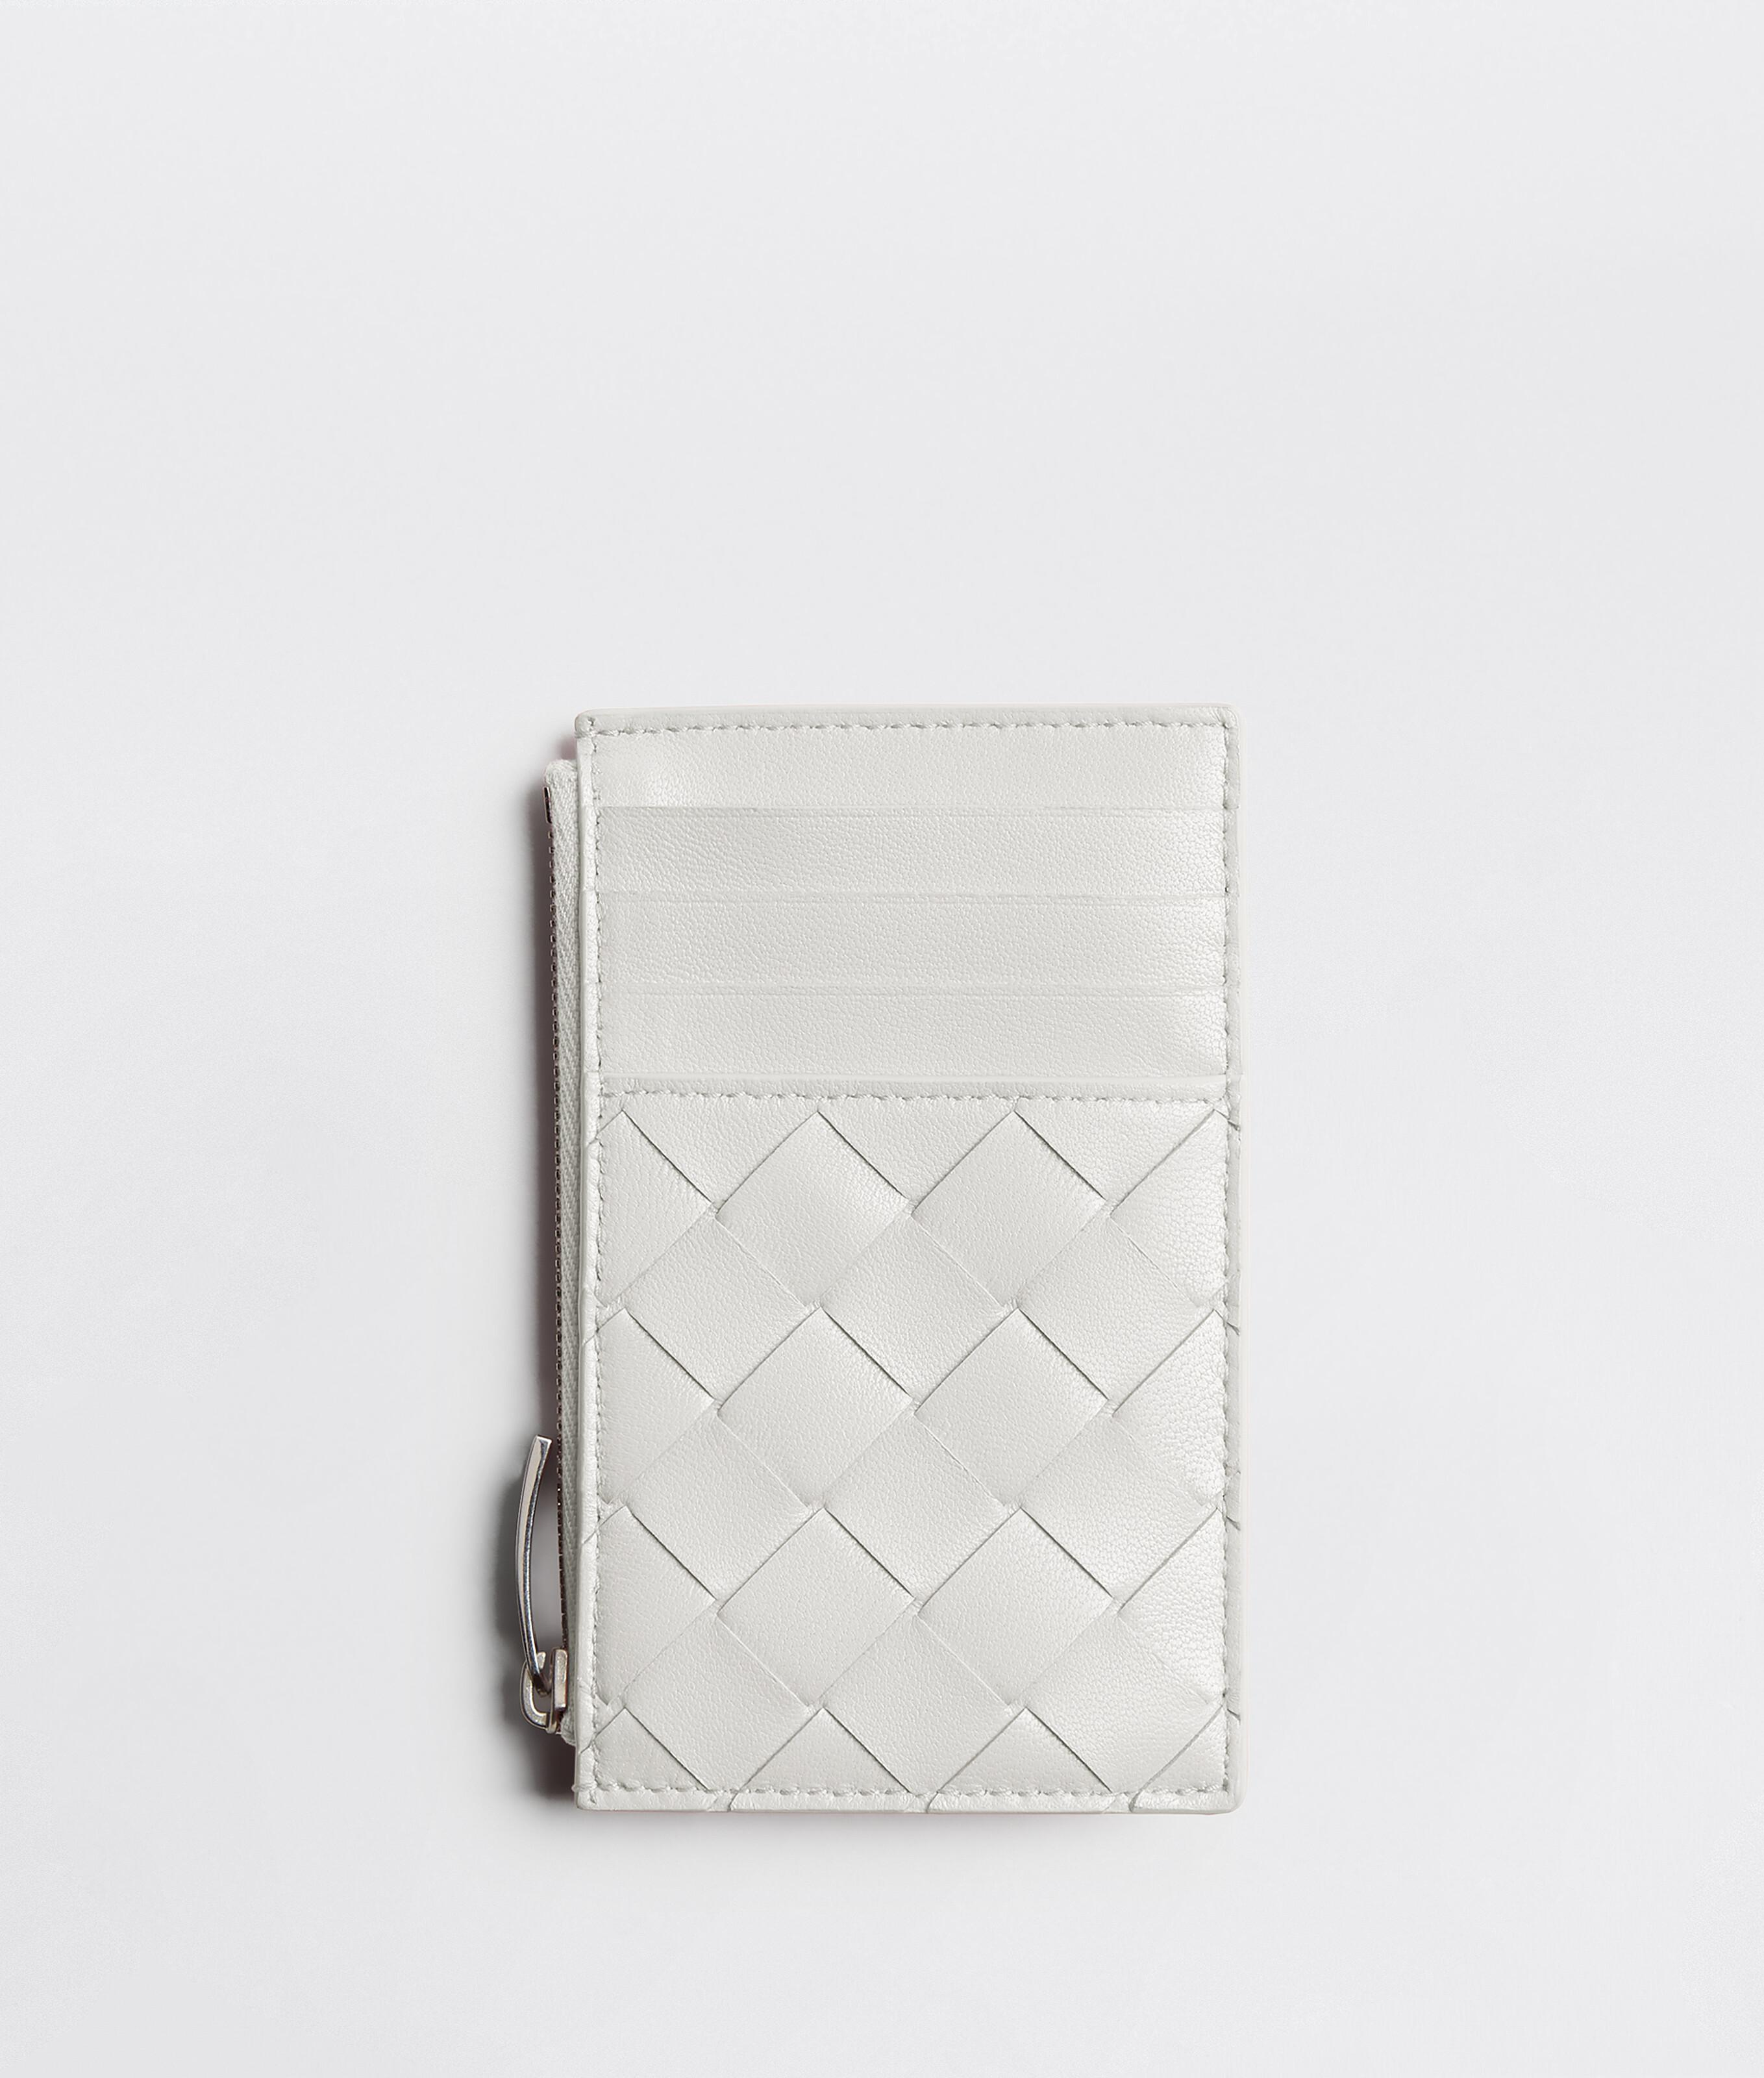 ZIPPED CARD HOLDER WITH COIN PURSE